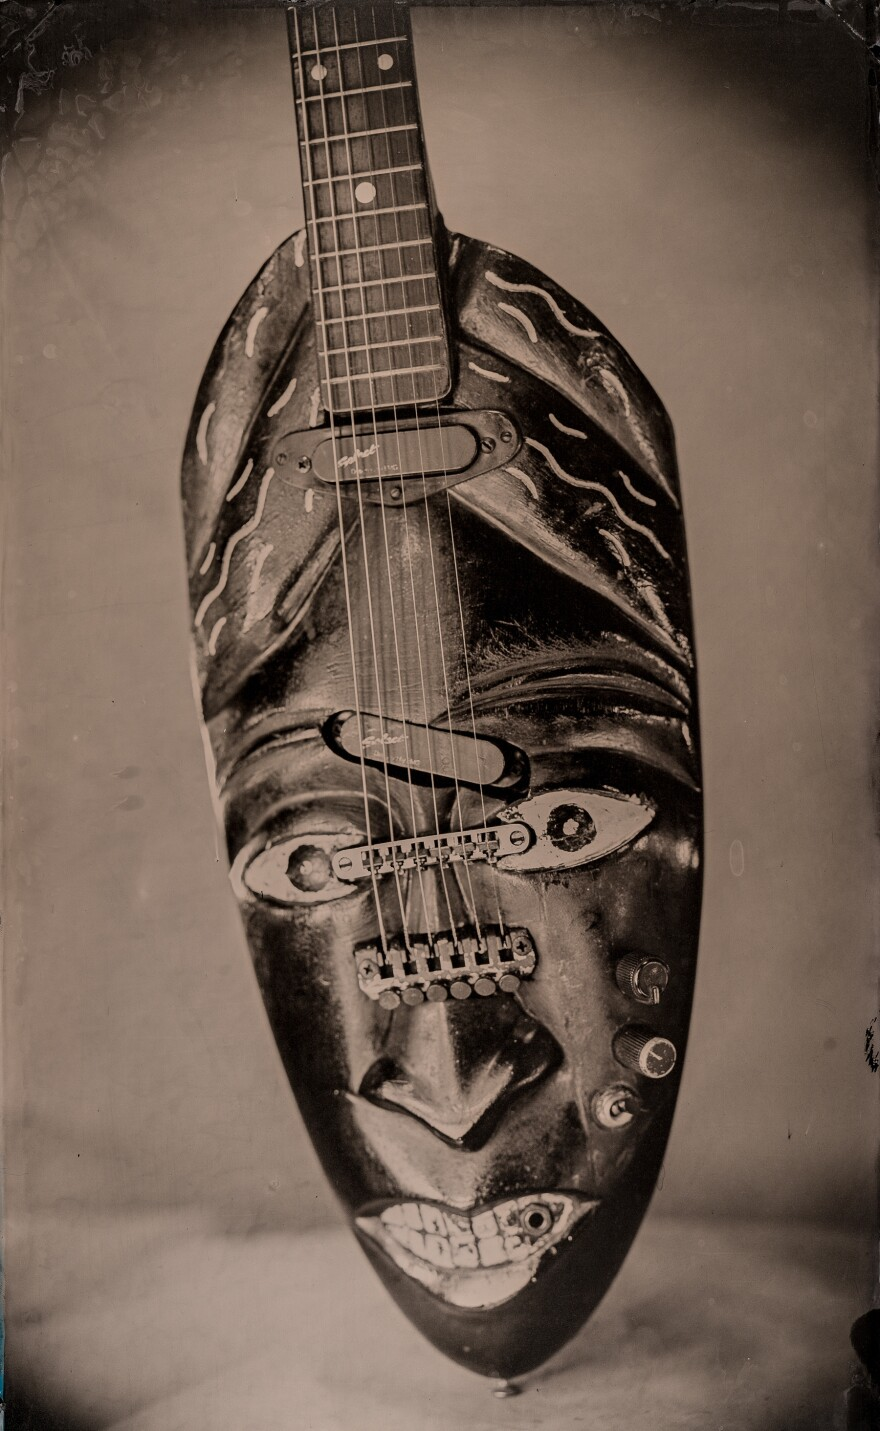 Freeman Vines' Death Mask guitar.